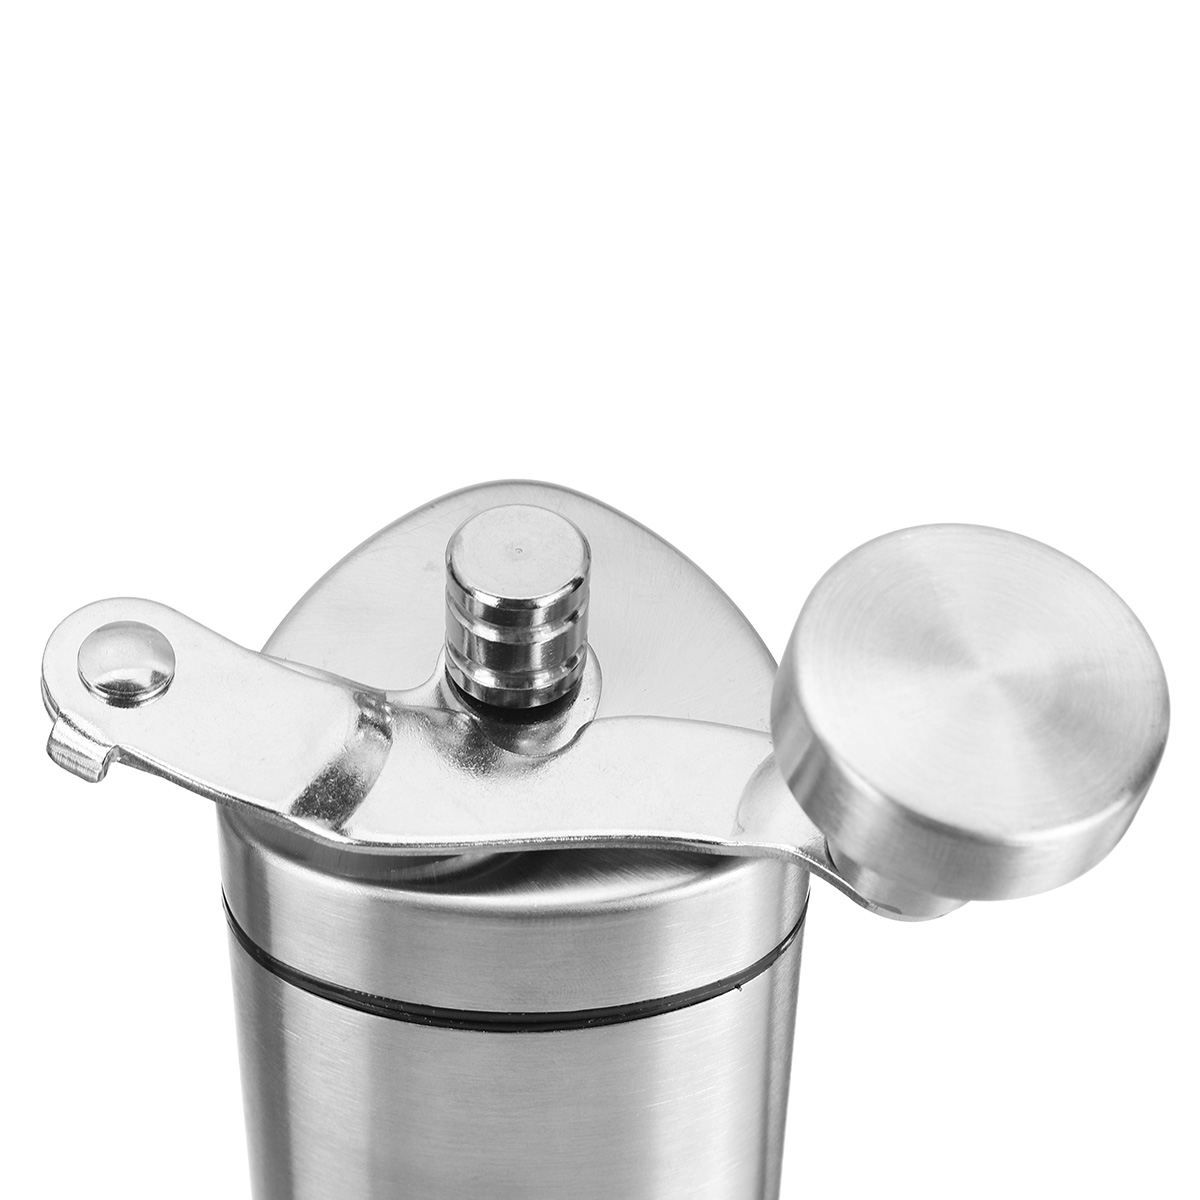 Portable Stainless Steel Coffee Grinder Manual Bean Grinding Hand Tool Mill